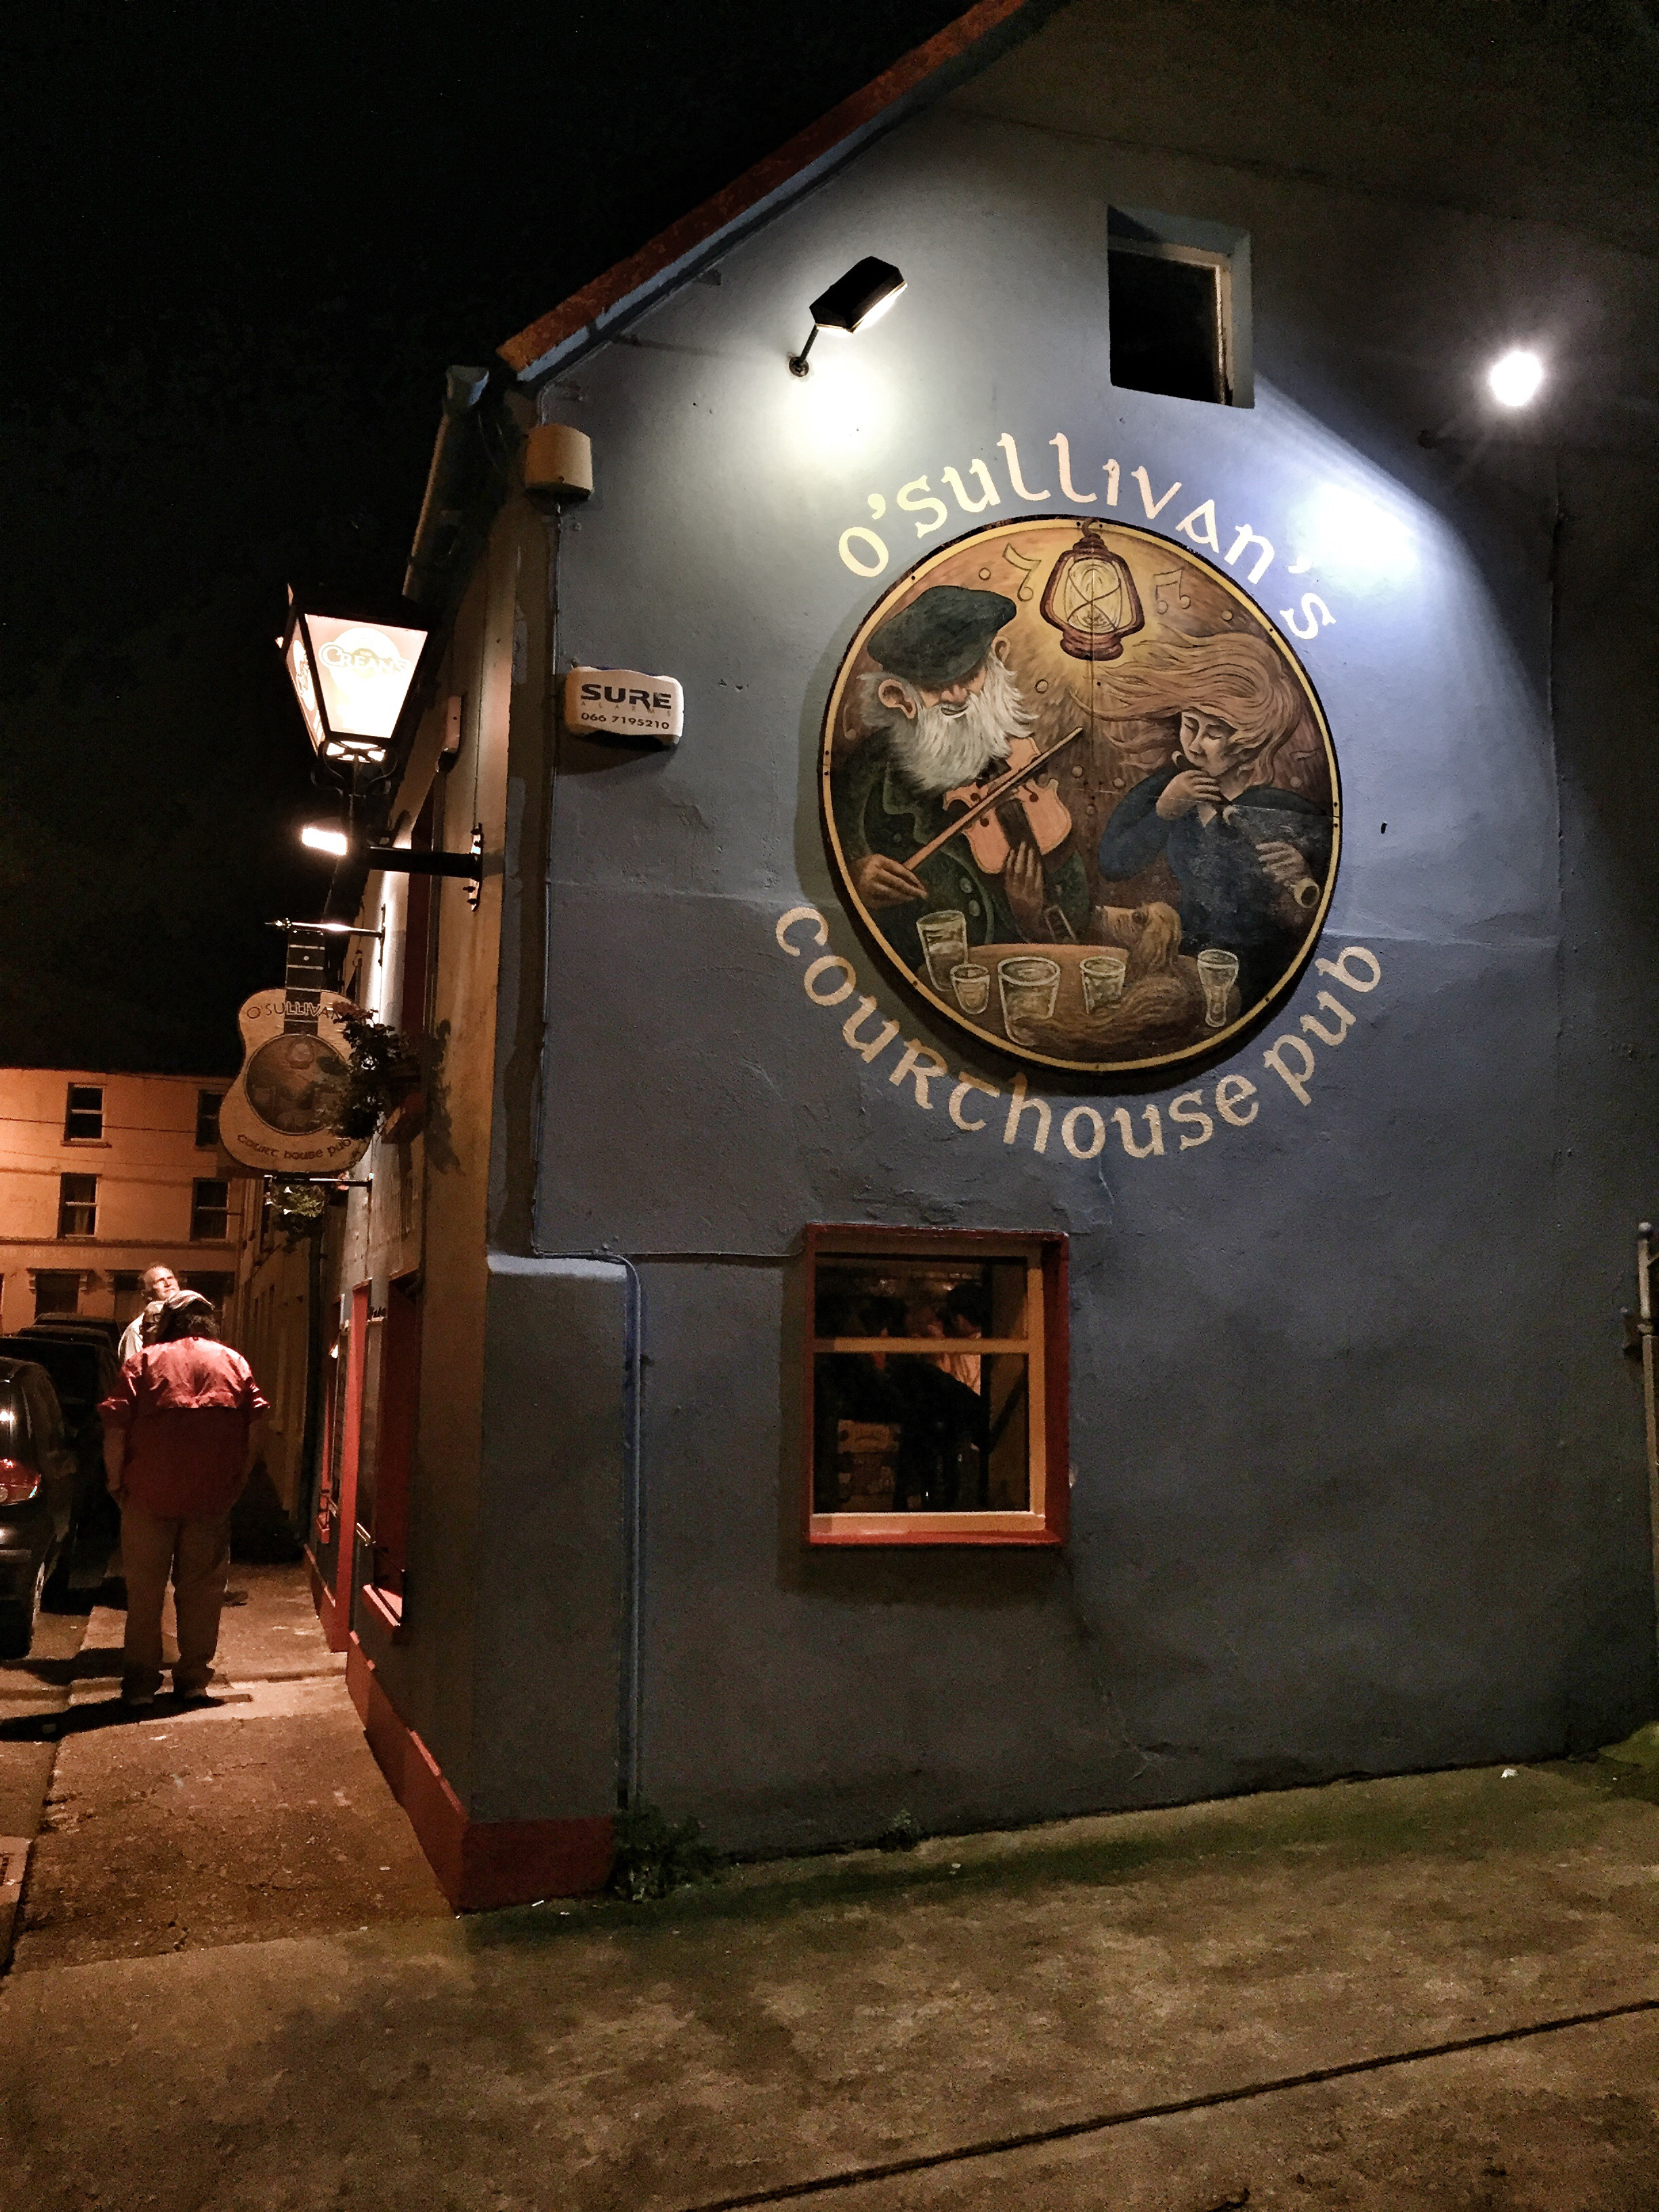 Irish pub with traditional music